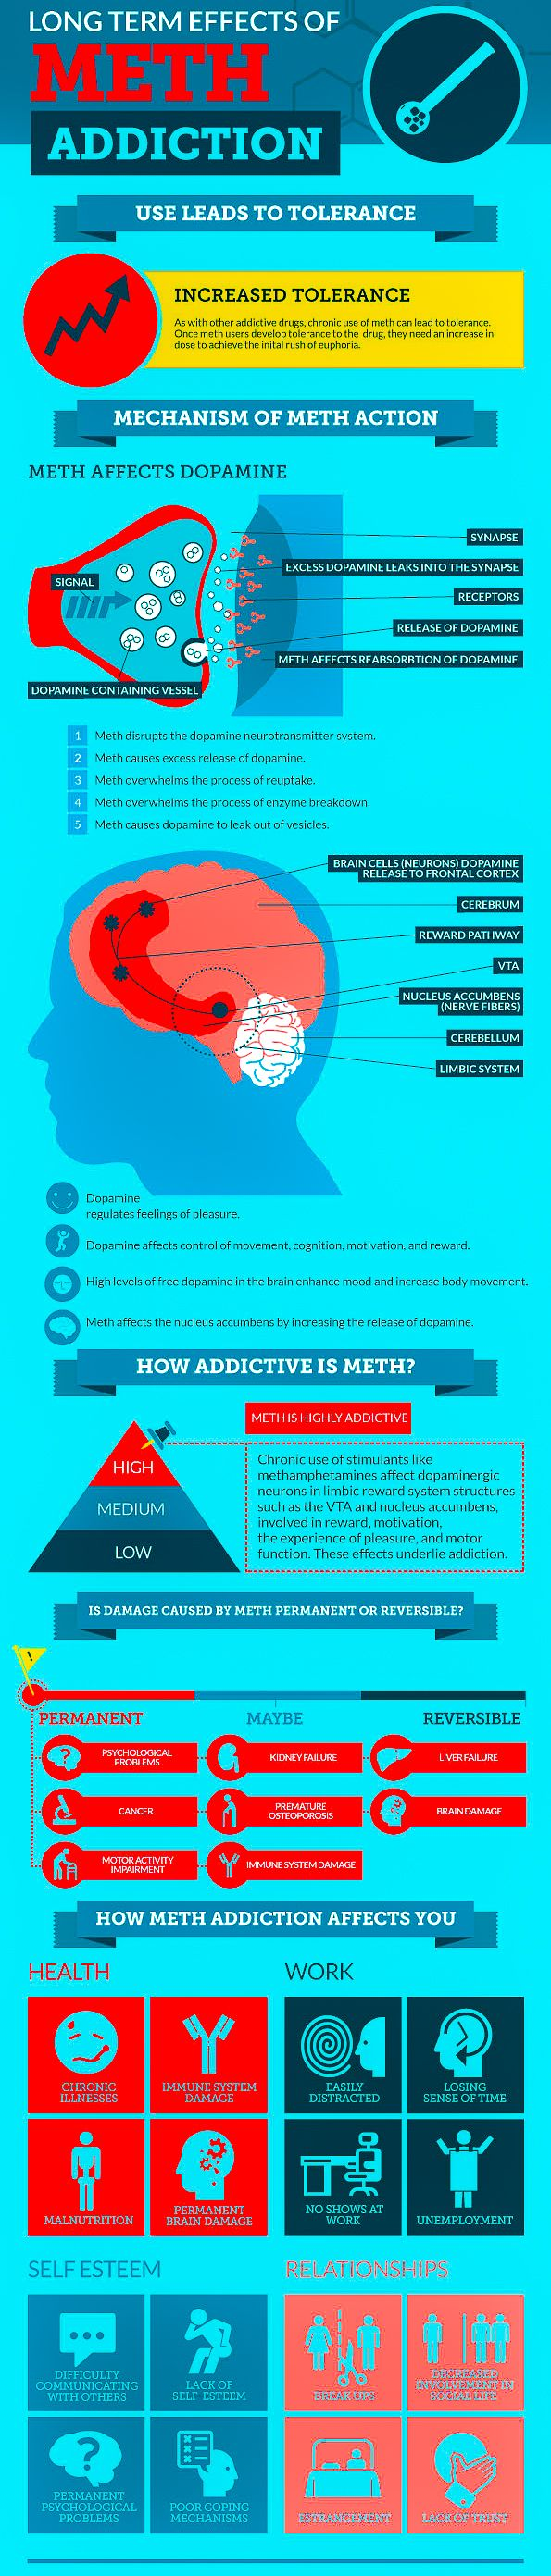 a study on methamphetamine and its effects on the central nervous system of the prenatal mothers and It also has longer-lasting and more harmful effects on the central nervous system that mothers used other drugs study: effects of prenatal methamphetamine.